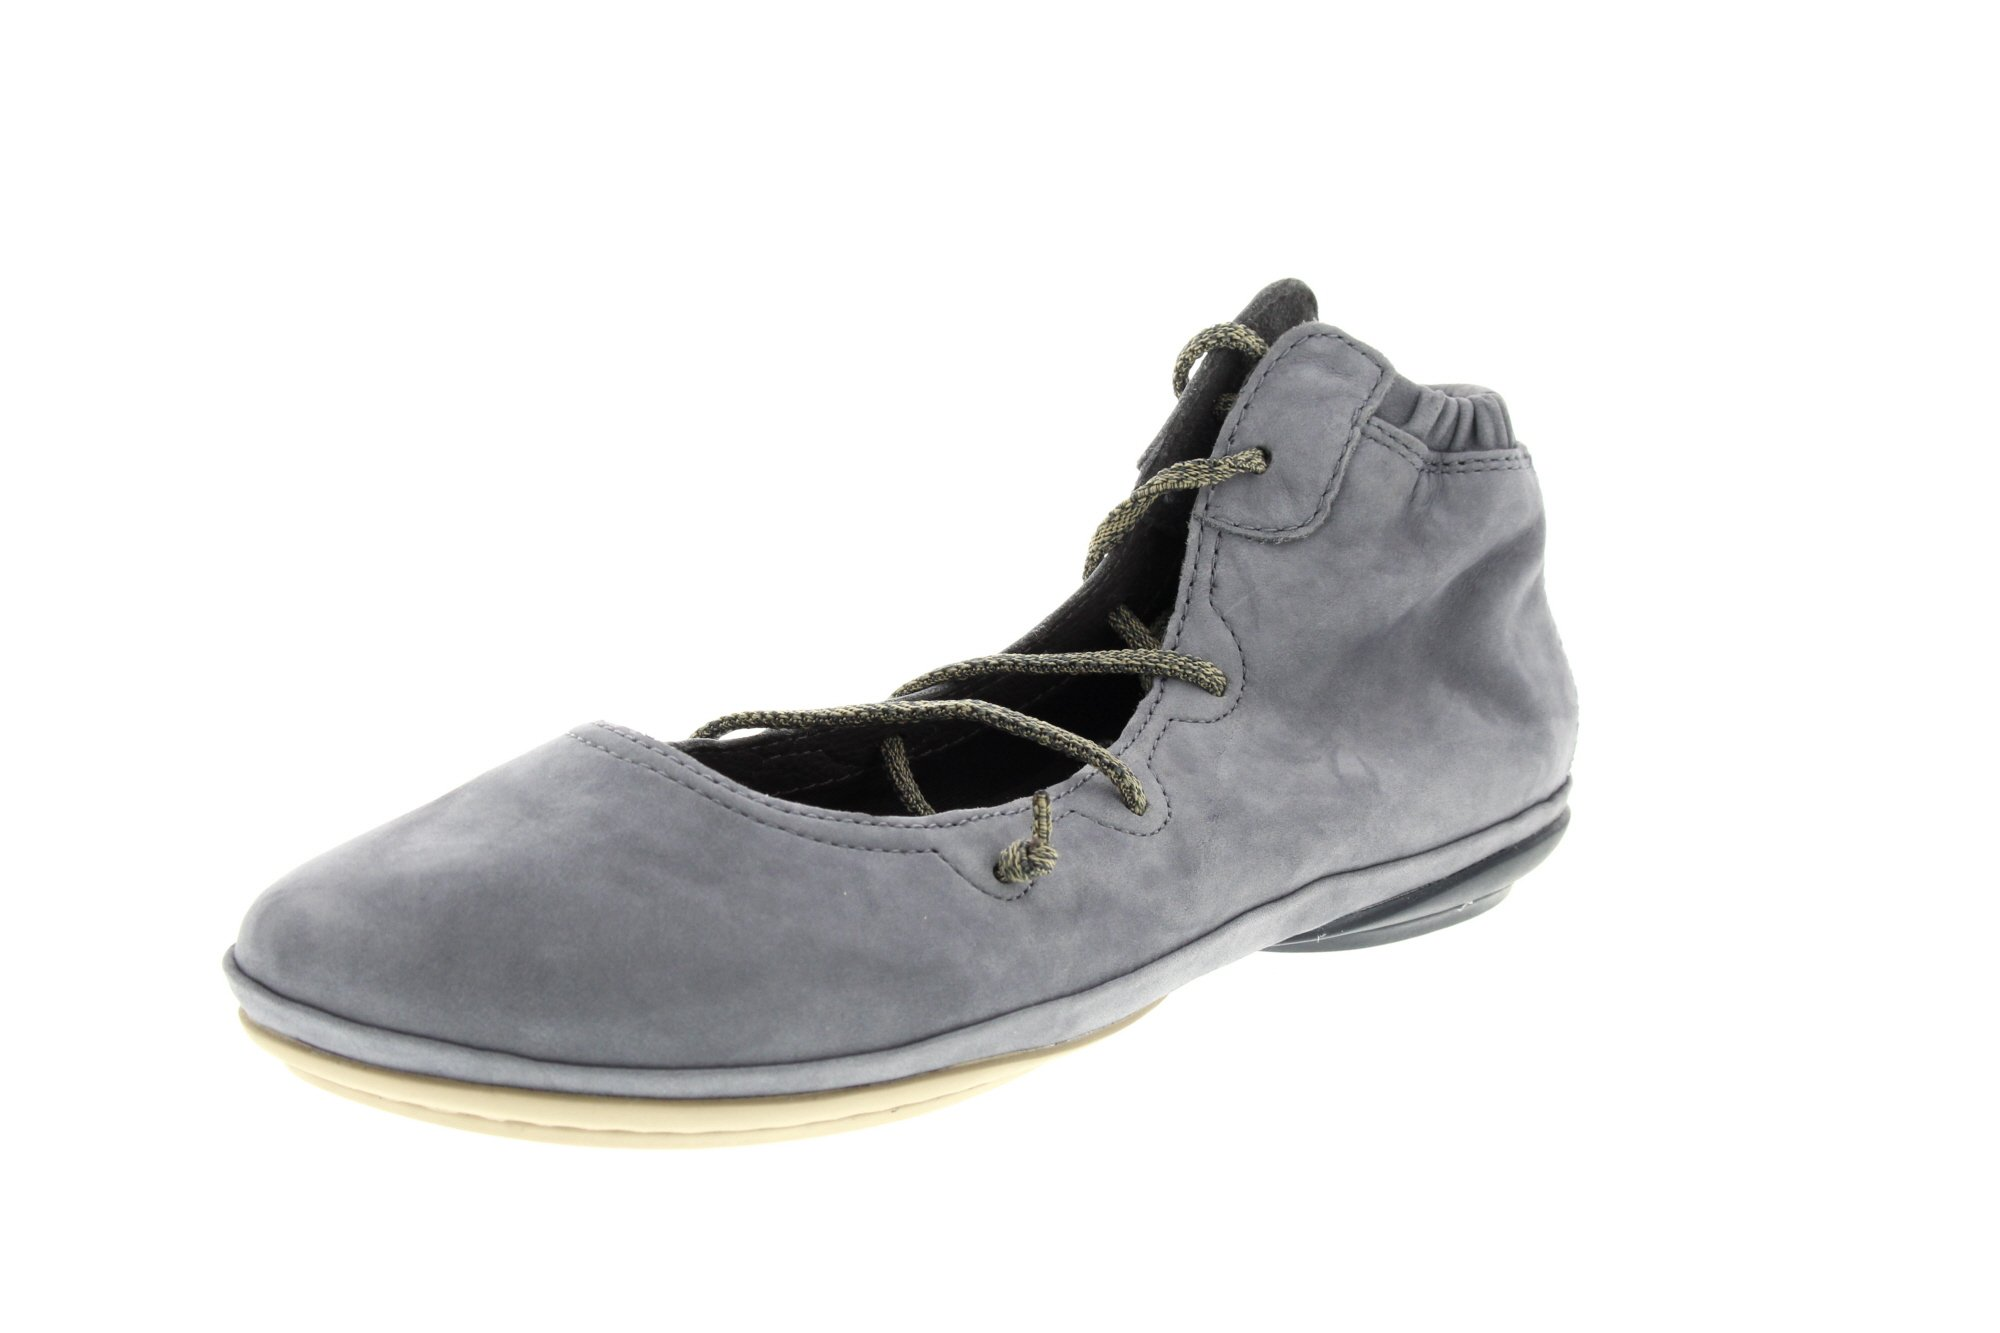 Camper Women's Right Nina K400194 Mary Jane Flat, Grey, 39 M EU (9 US)